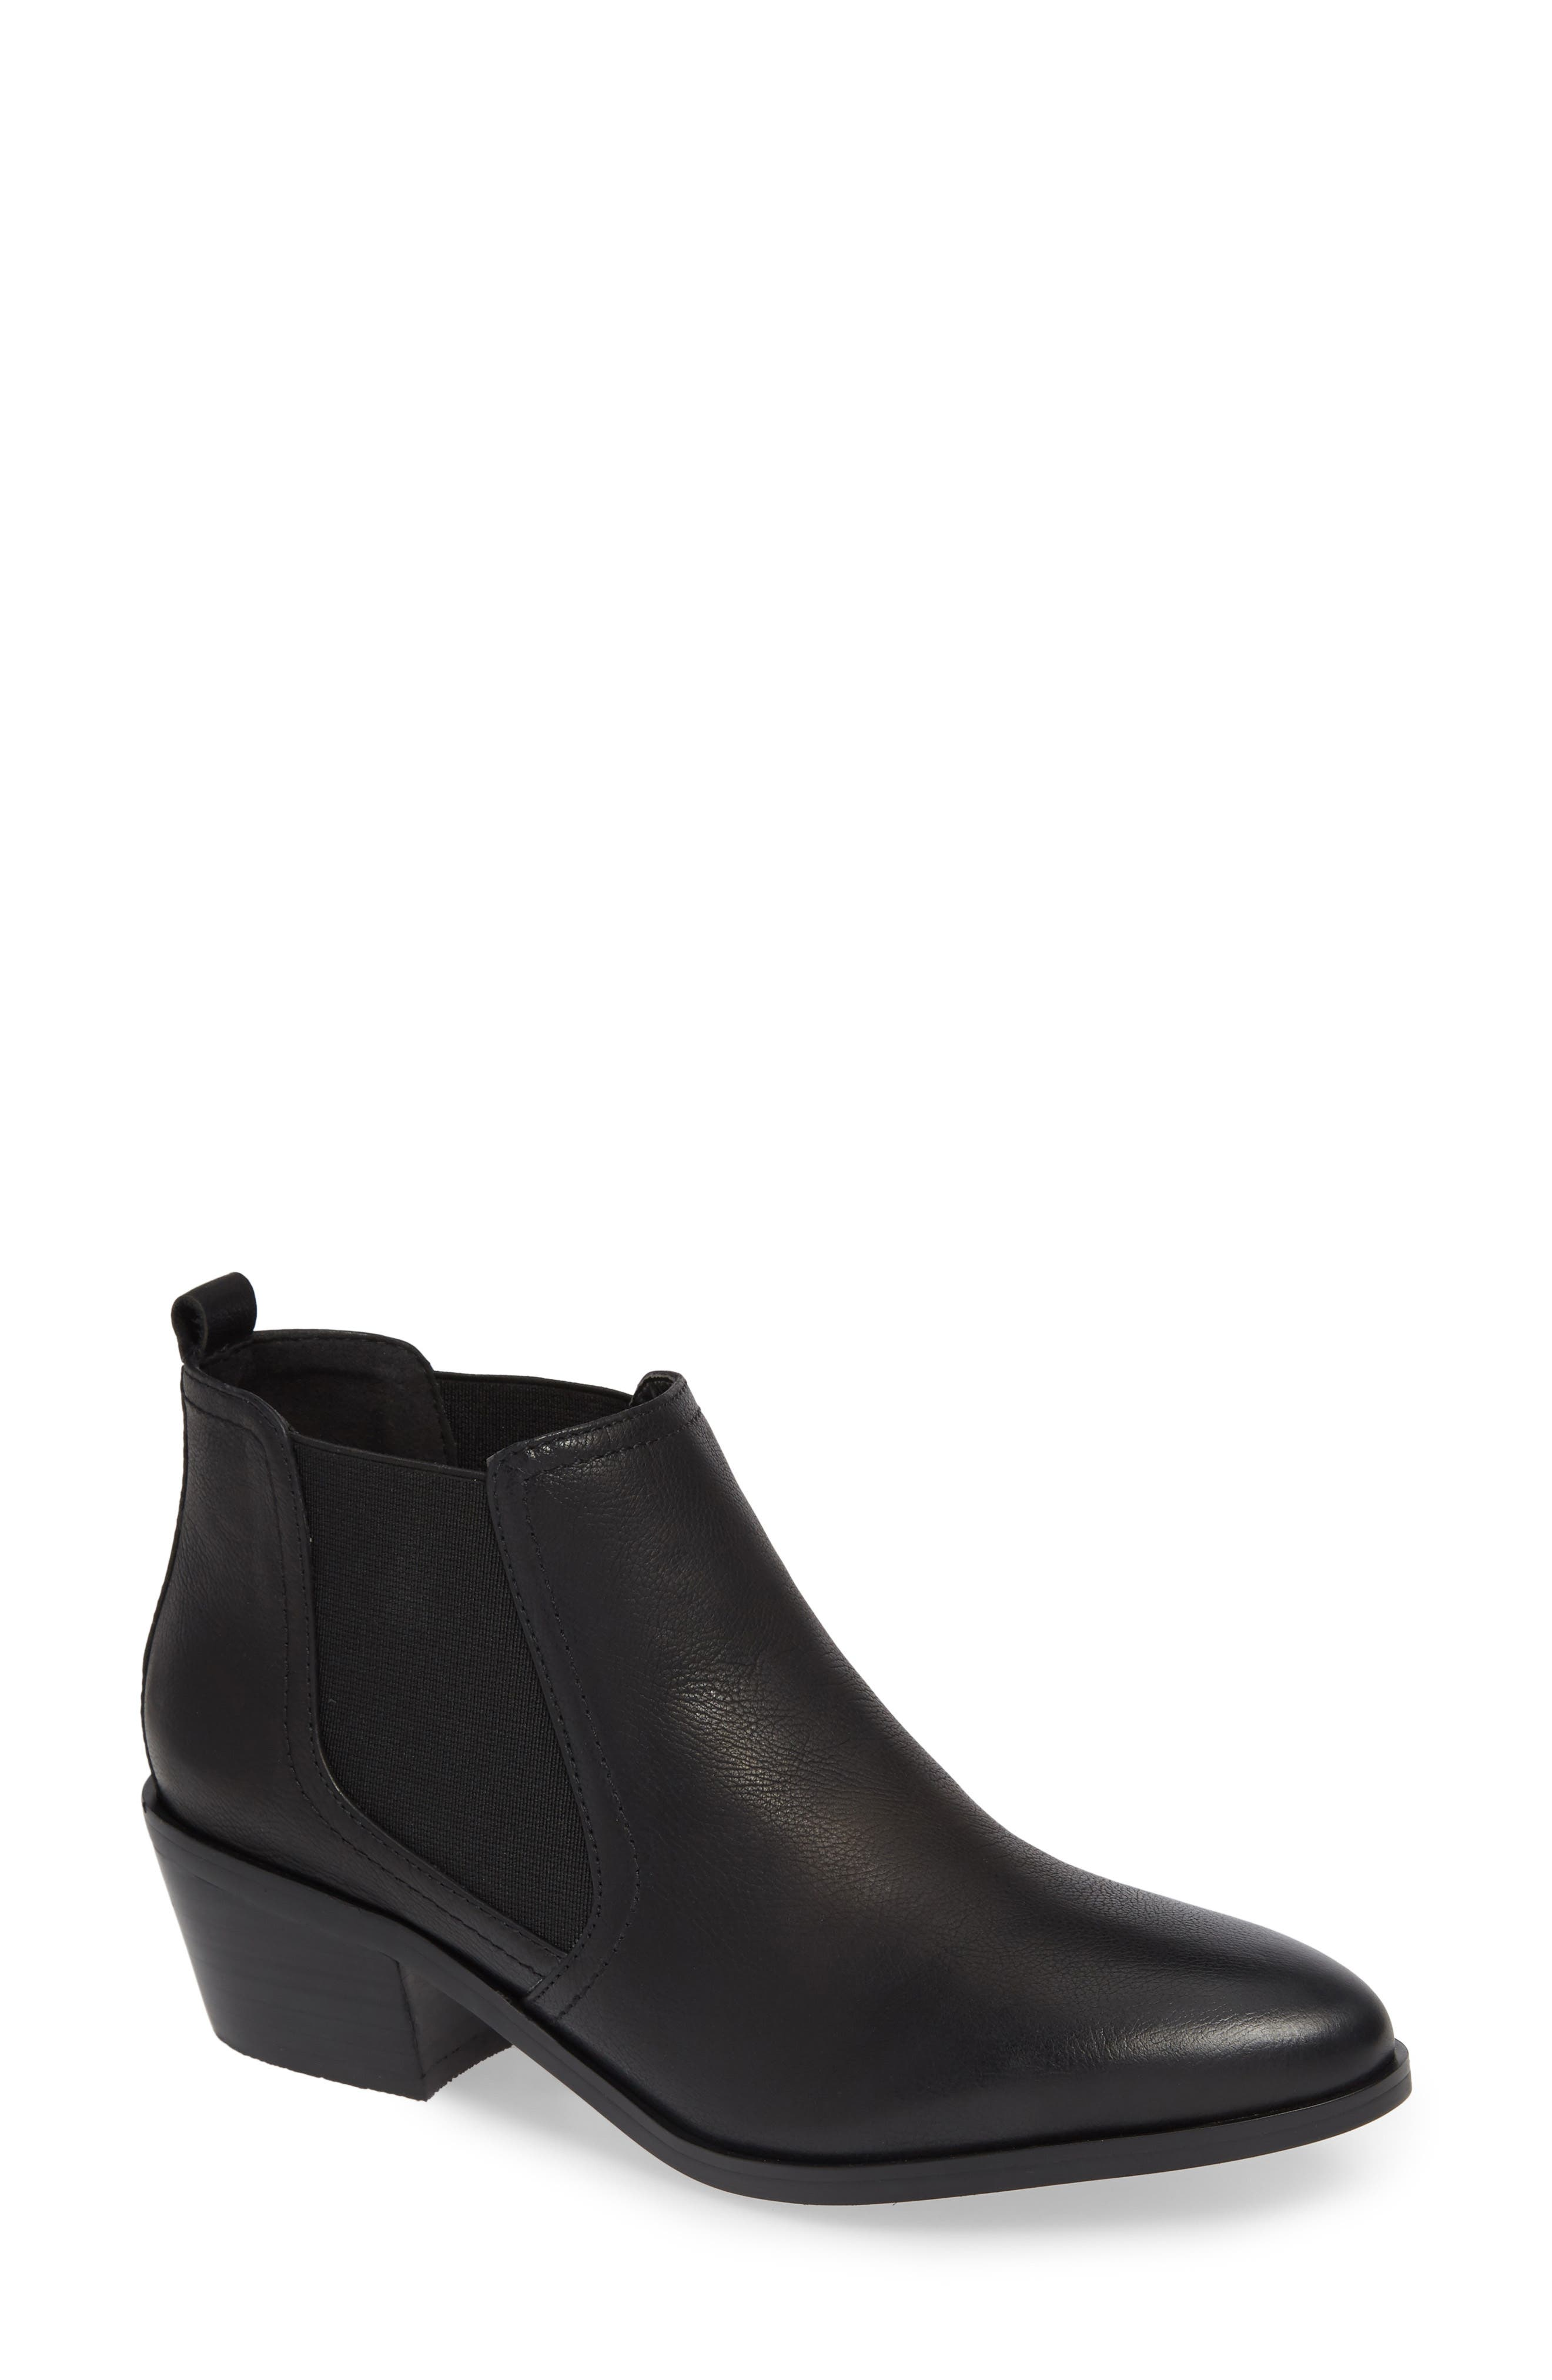 David Tate Maxie Chelsea Boot- Black